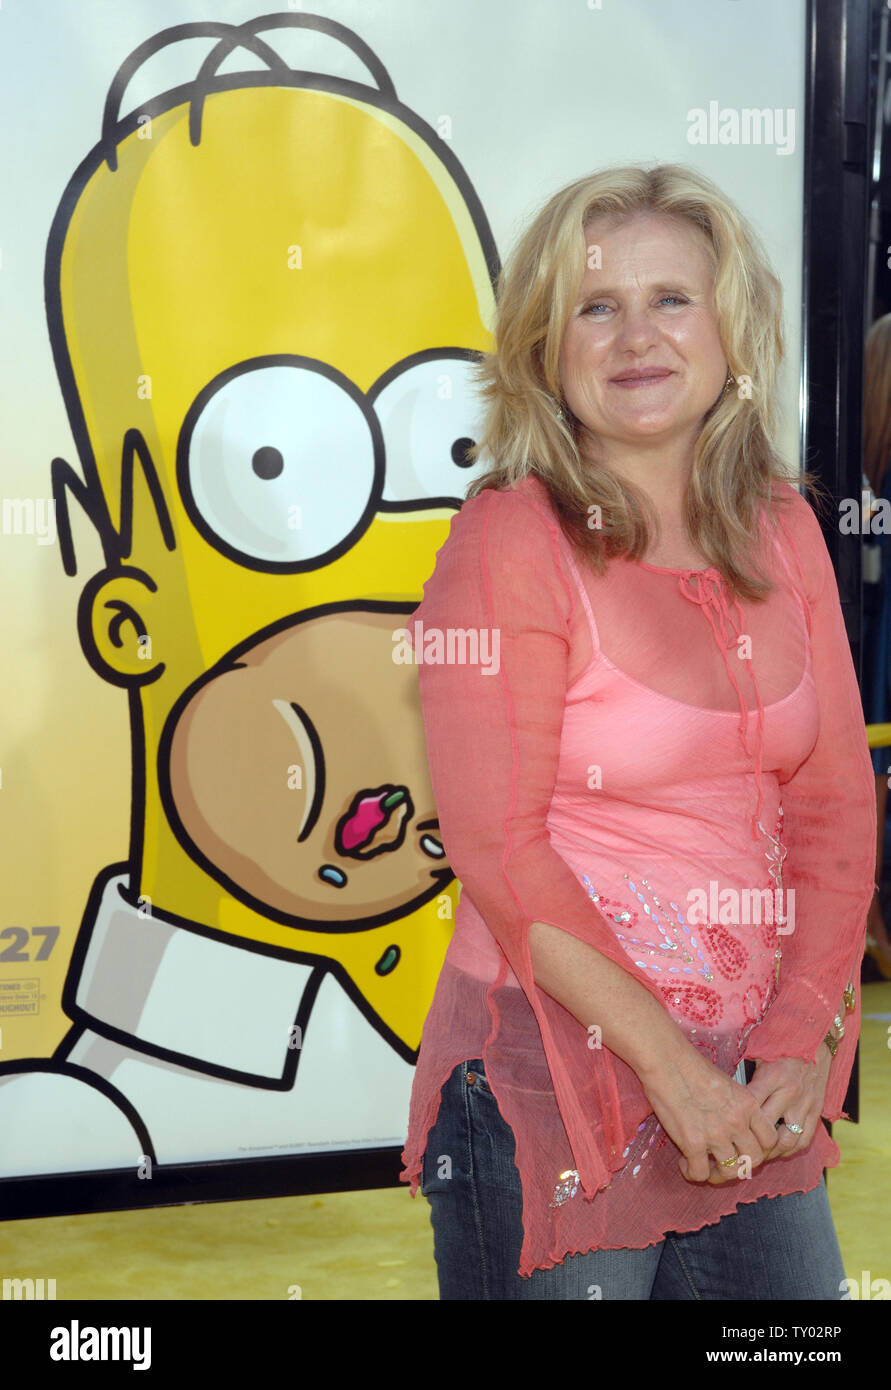 Nancy Cartwright The Voice Of Bart Simpson In The Animated Motion Picture Comedy The Simpsons Movie Arrives At The Premiere Of The Film In The Westwood Section Of Los Angeles On July